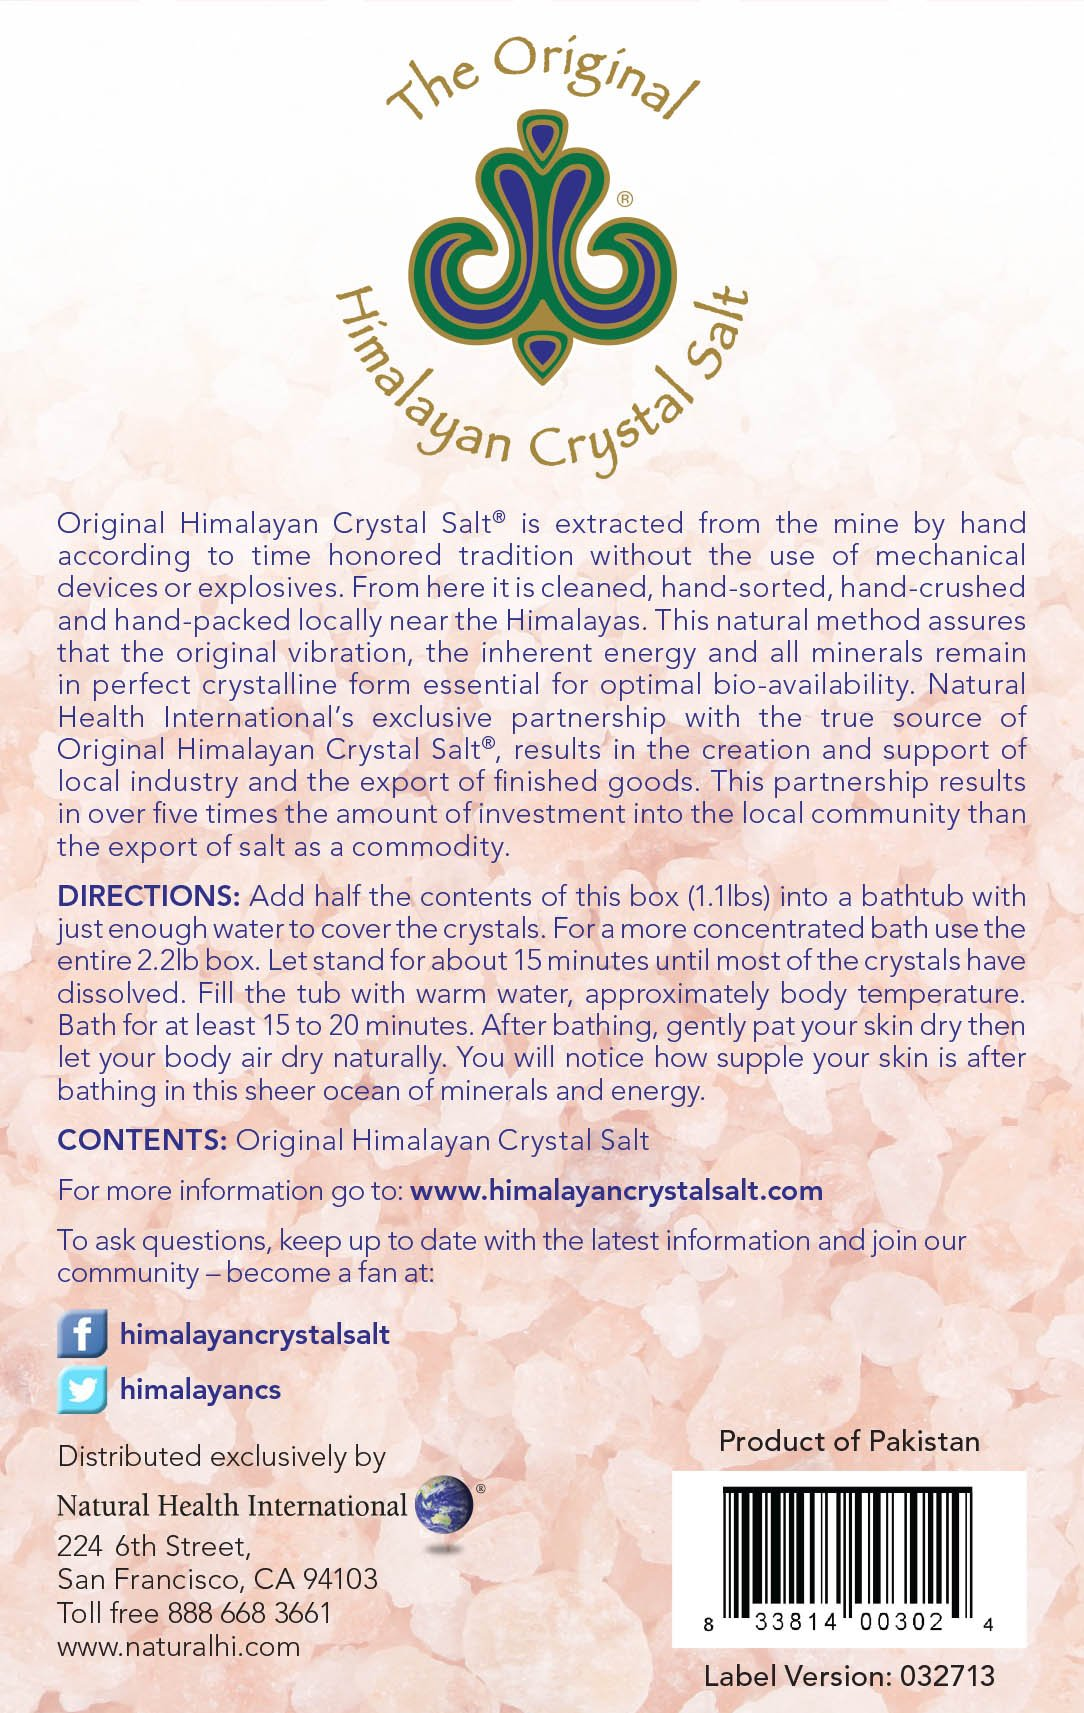 Original Himalayan Crystal Salt is extracted from the wine by hand according to time honored tradition without the use of mechanical devices or explosives. From here it is cleaned, hand-stored, hand-crushed and hand-packed locally near the Himalayas. This Natural method assures that the original vibration, the inherent energy and all minerals remain in perfect crystalline form essential for optimal bio-availability.